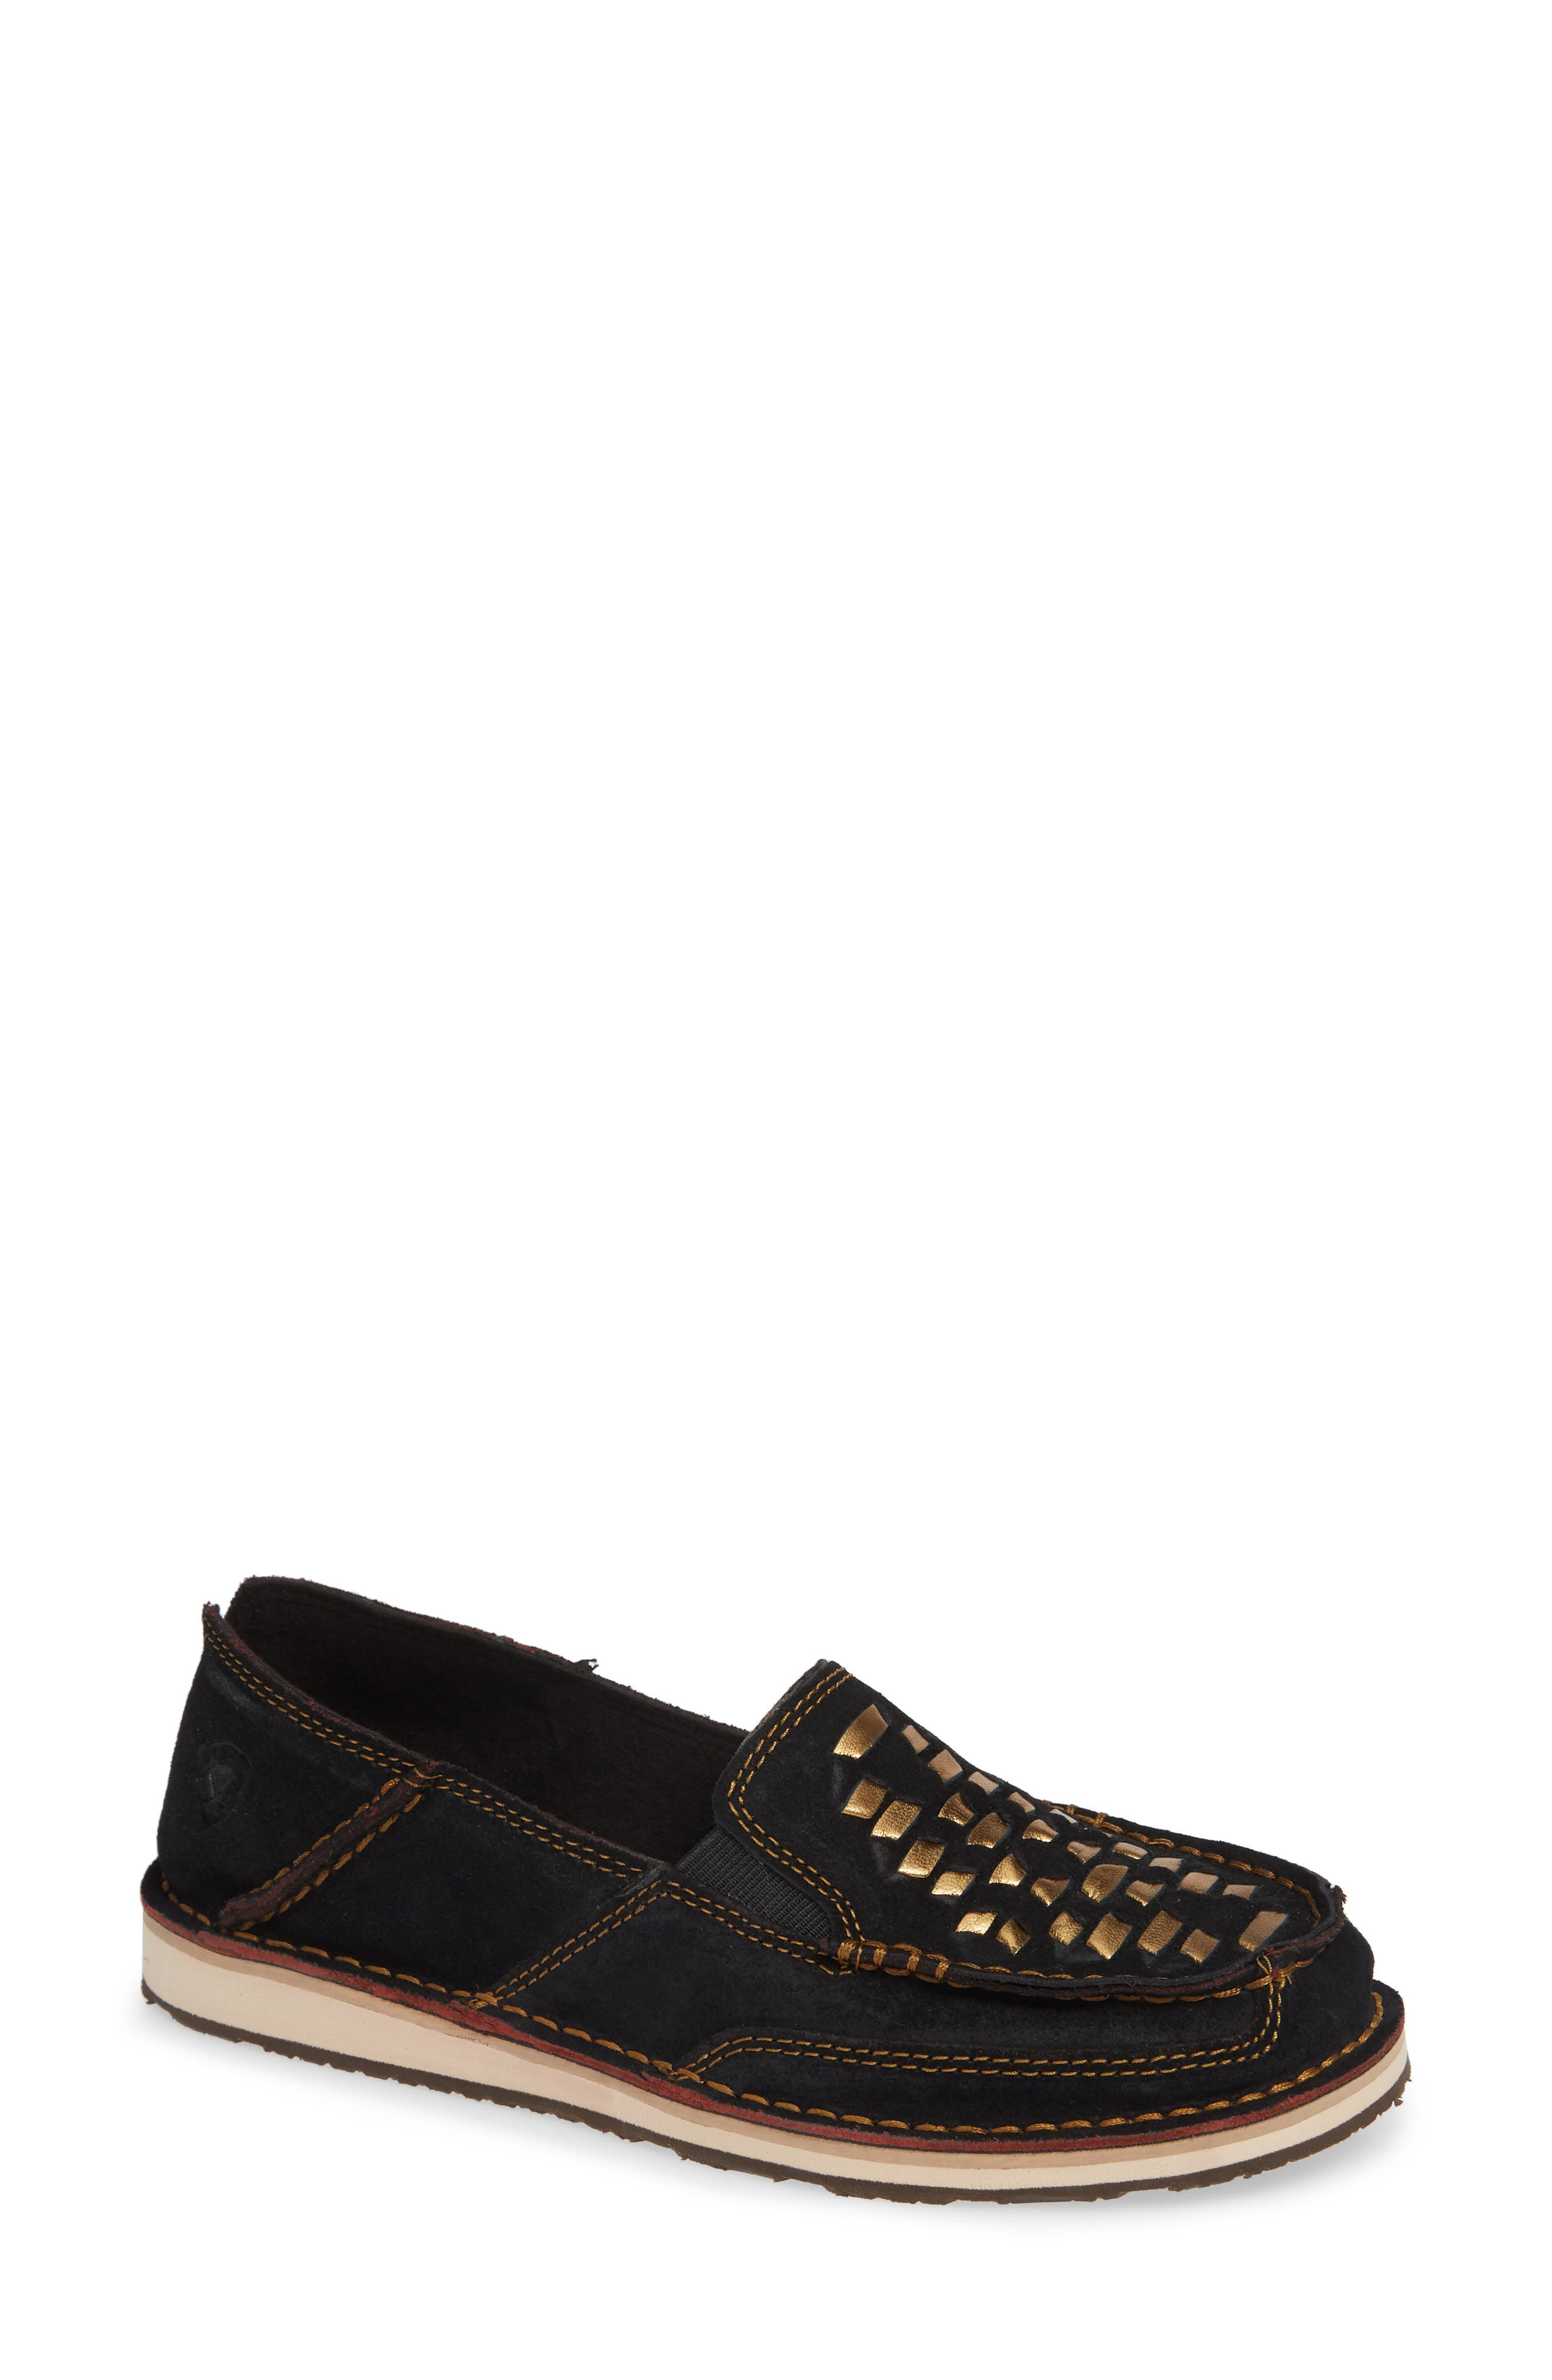 Cruiser Woven Loafer in Black Suede/ Leather